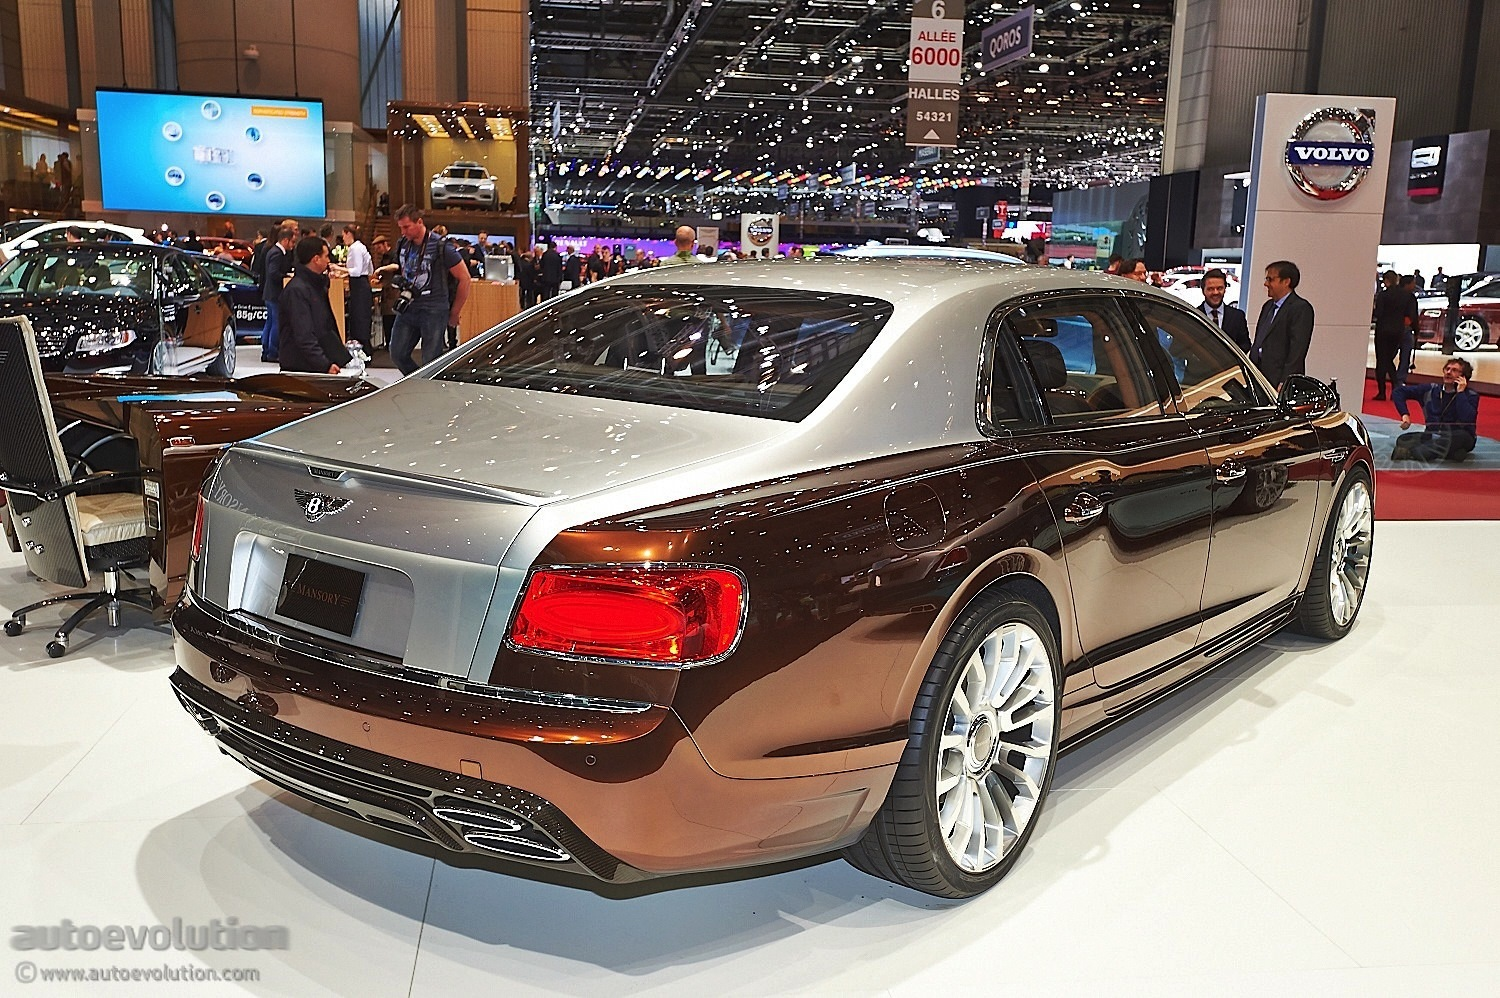 Mansory Bentley Flying Spur Wallpapers Vehicles Hq Mansory Bentley Flying Spur Pictures 4k Wallpapers 2019